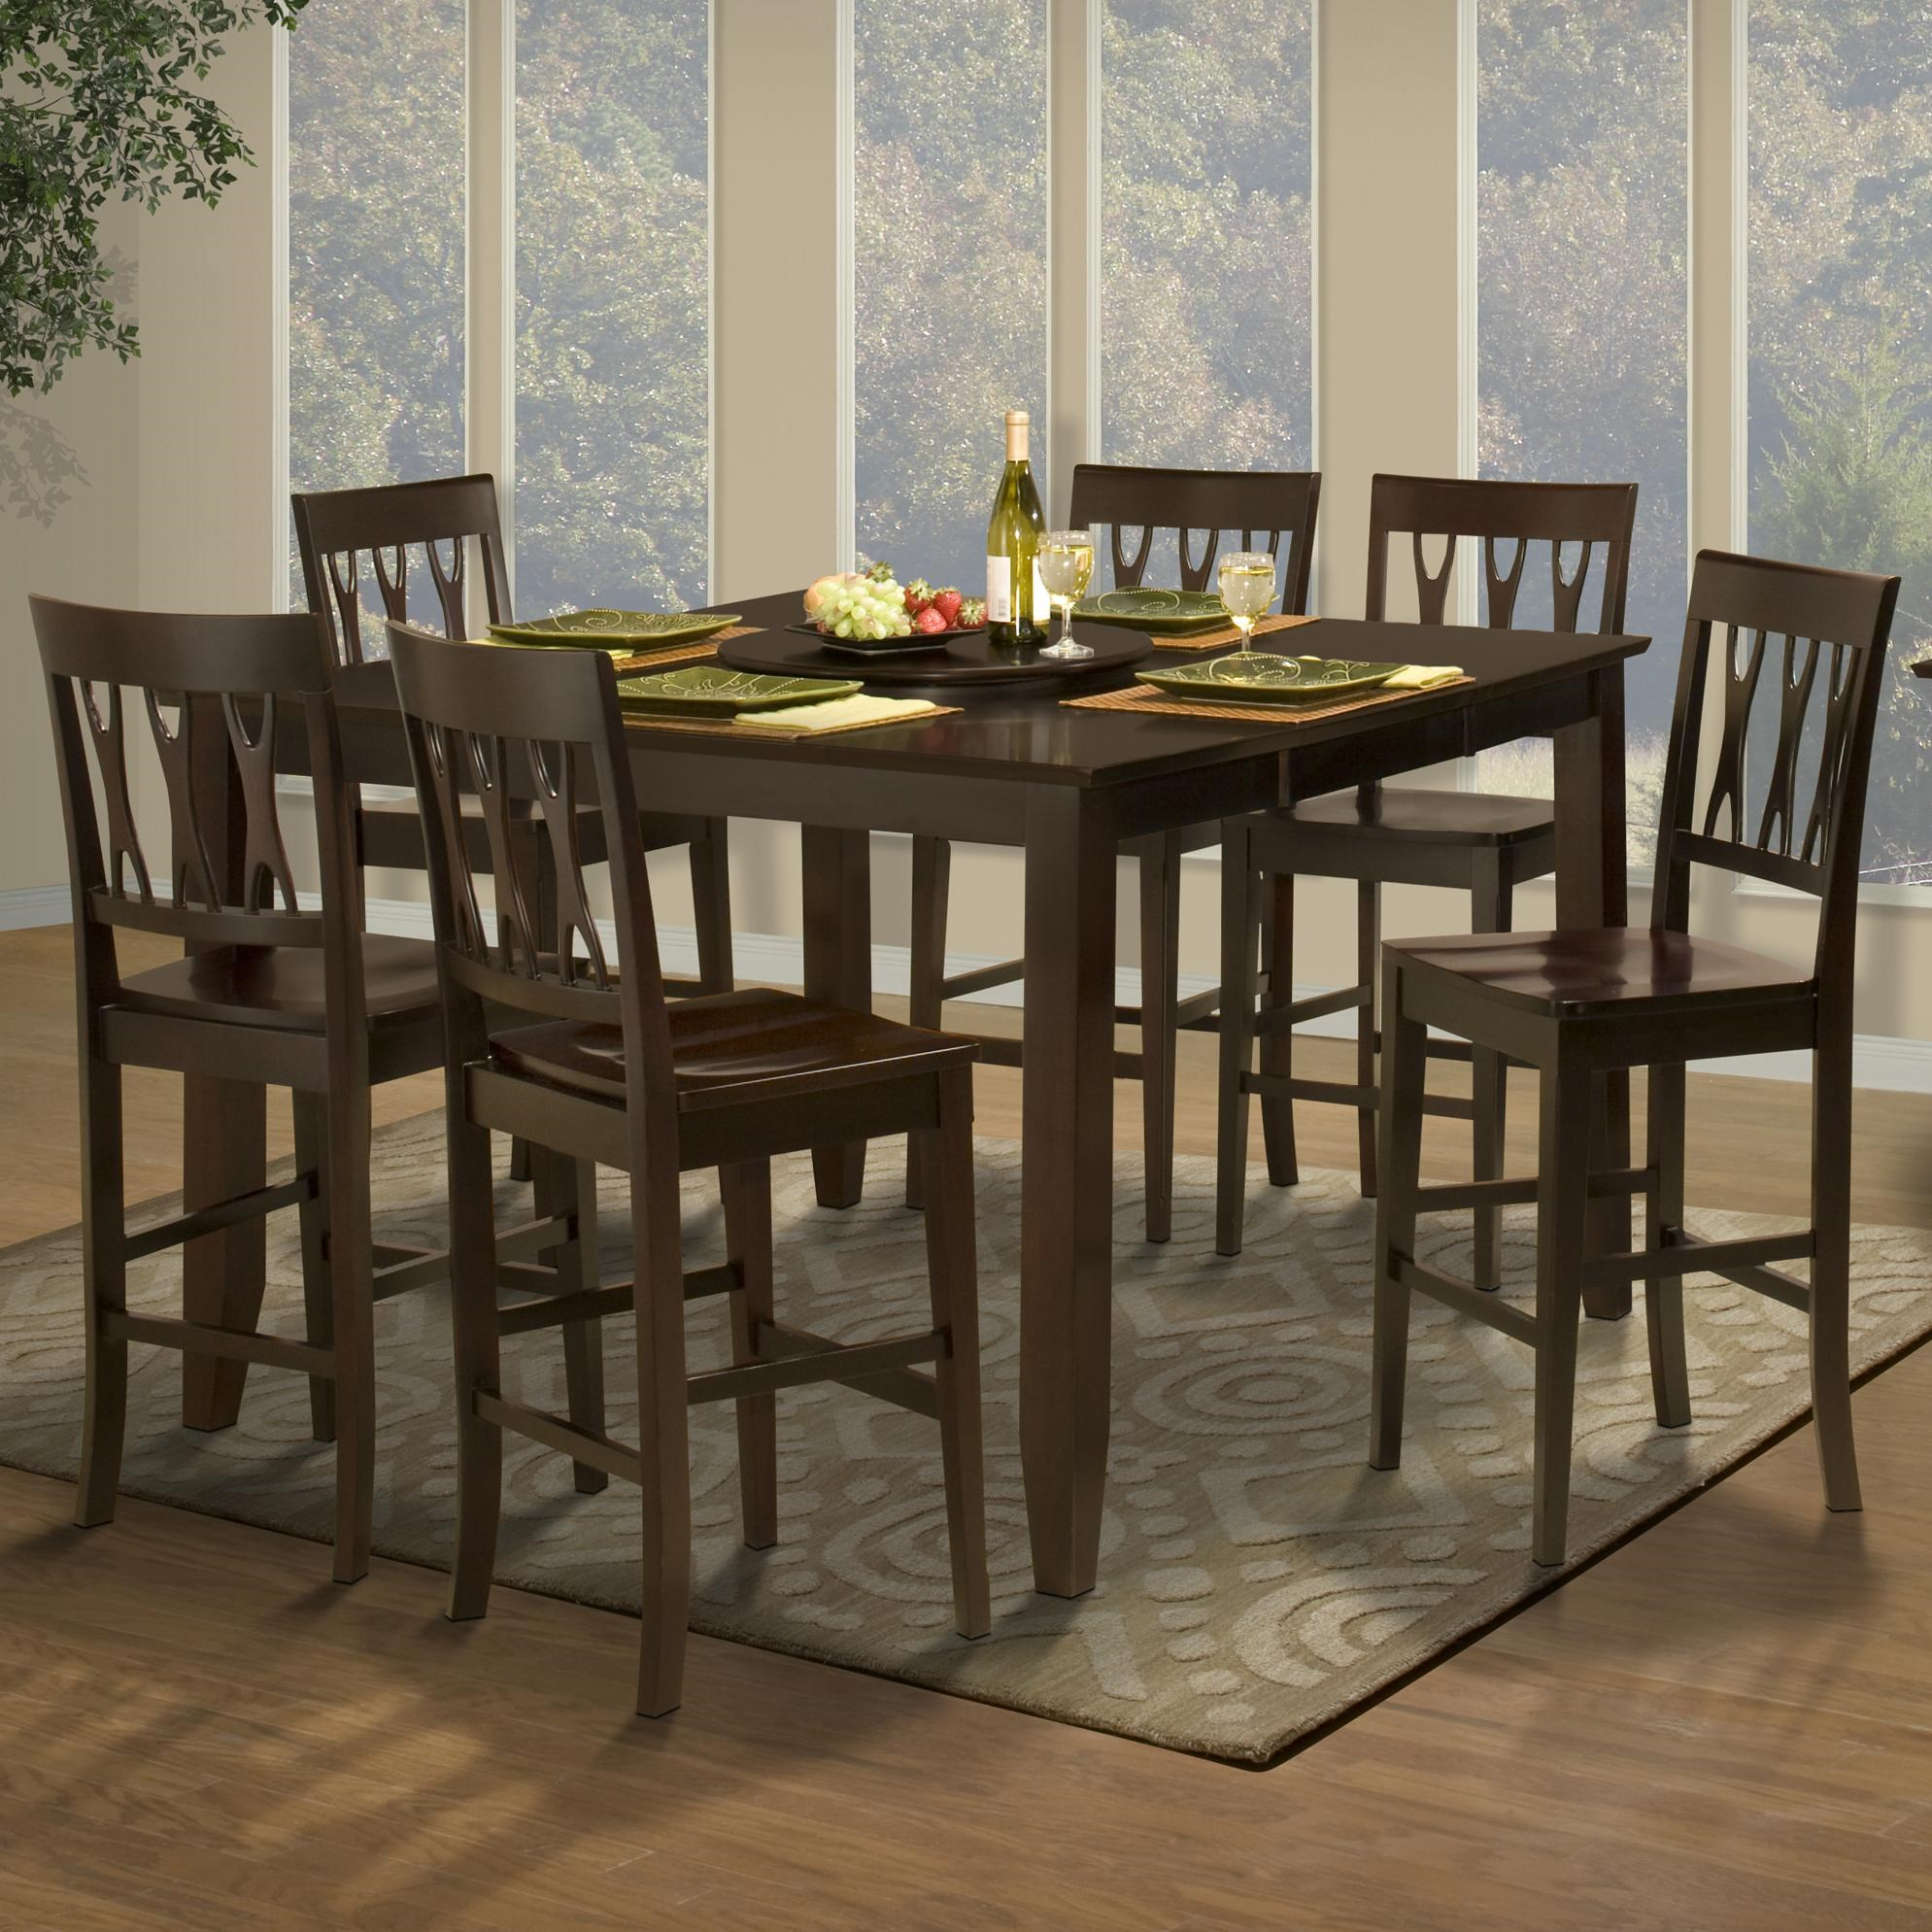 New Classic Style 19 7 Piece Counter Height Table And All Wood Abbie Chair  Set